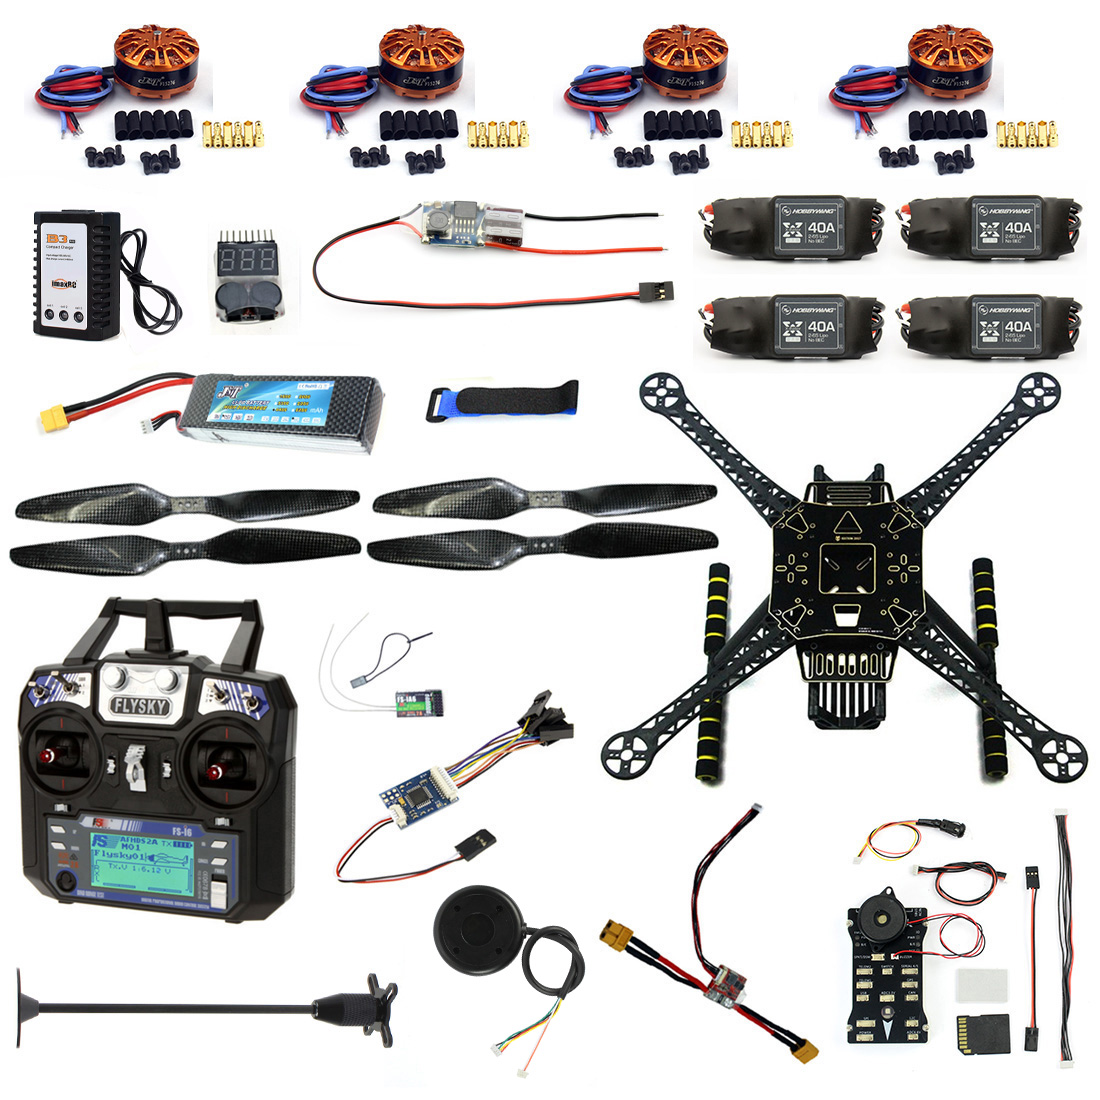 DIY RC Drone Full Kit 4 Axle S600 Frame PIX 2.4.8 Flight Control Buzzer Alarm FS i6 Transmitter Motor GPS with Battery Charger